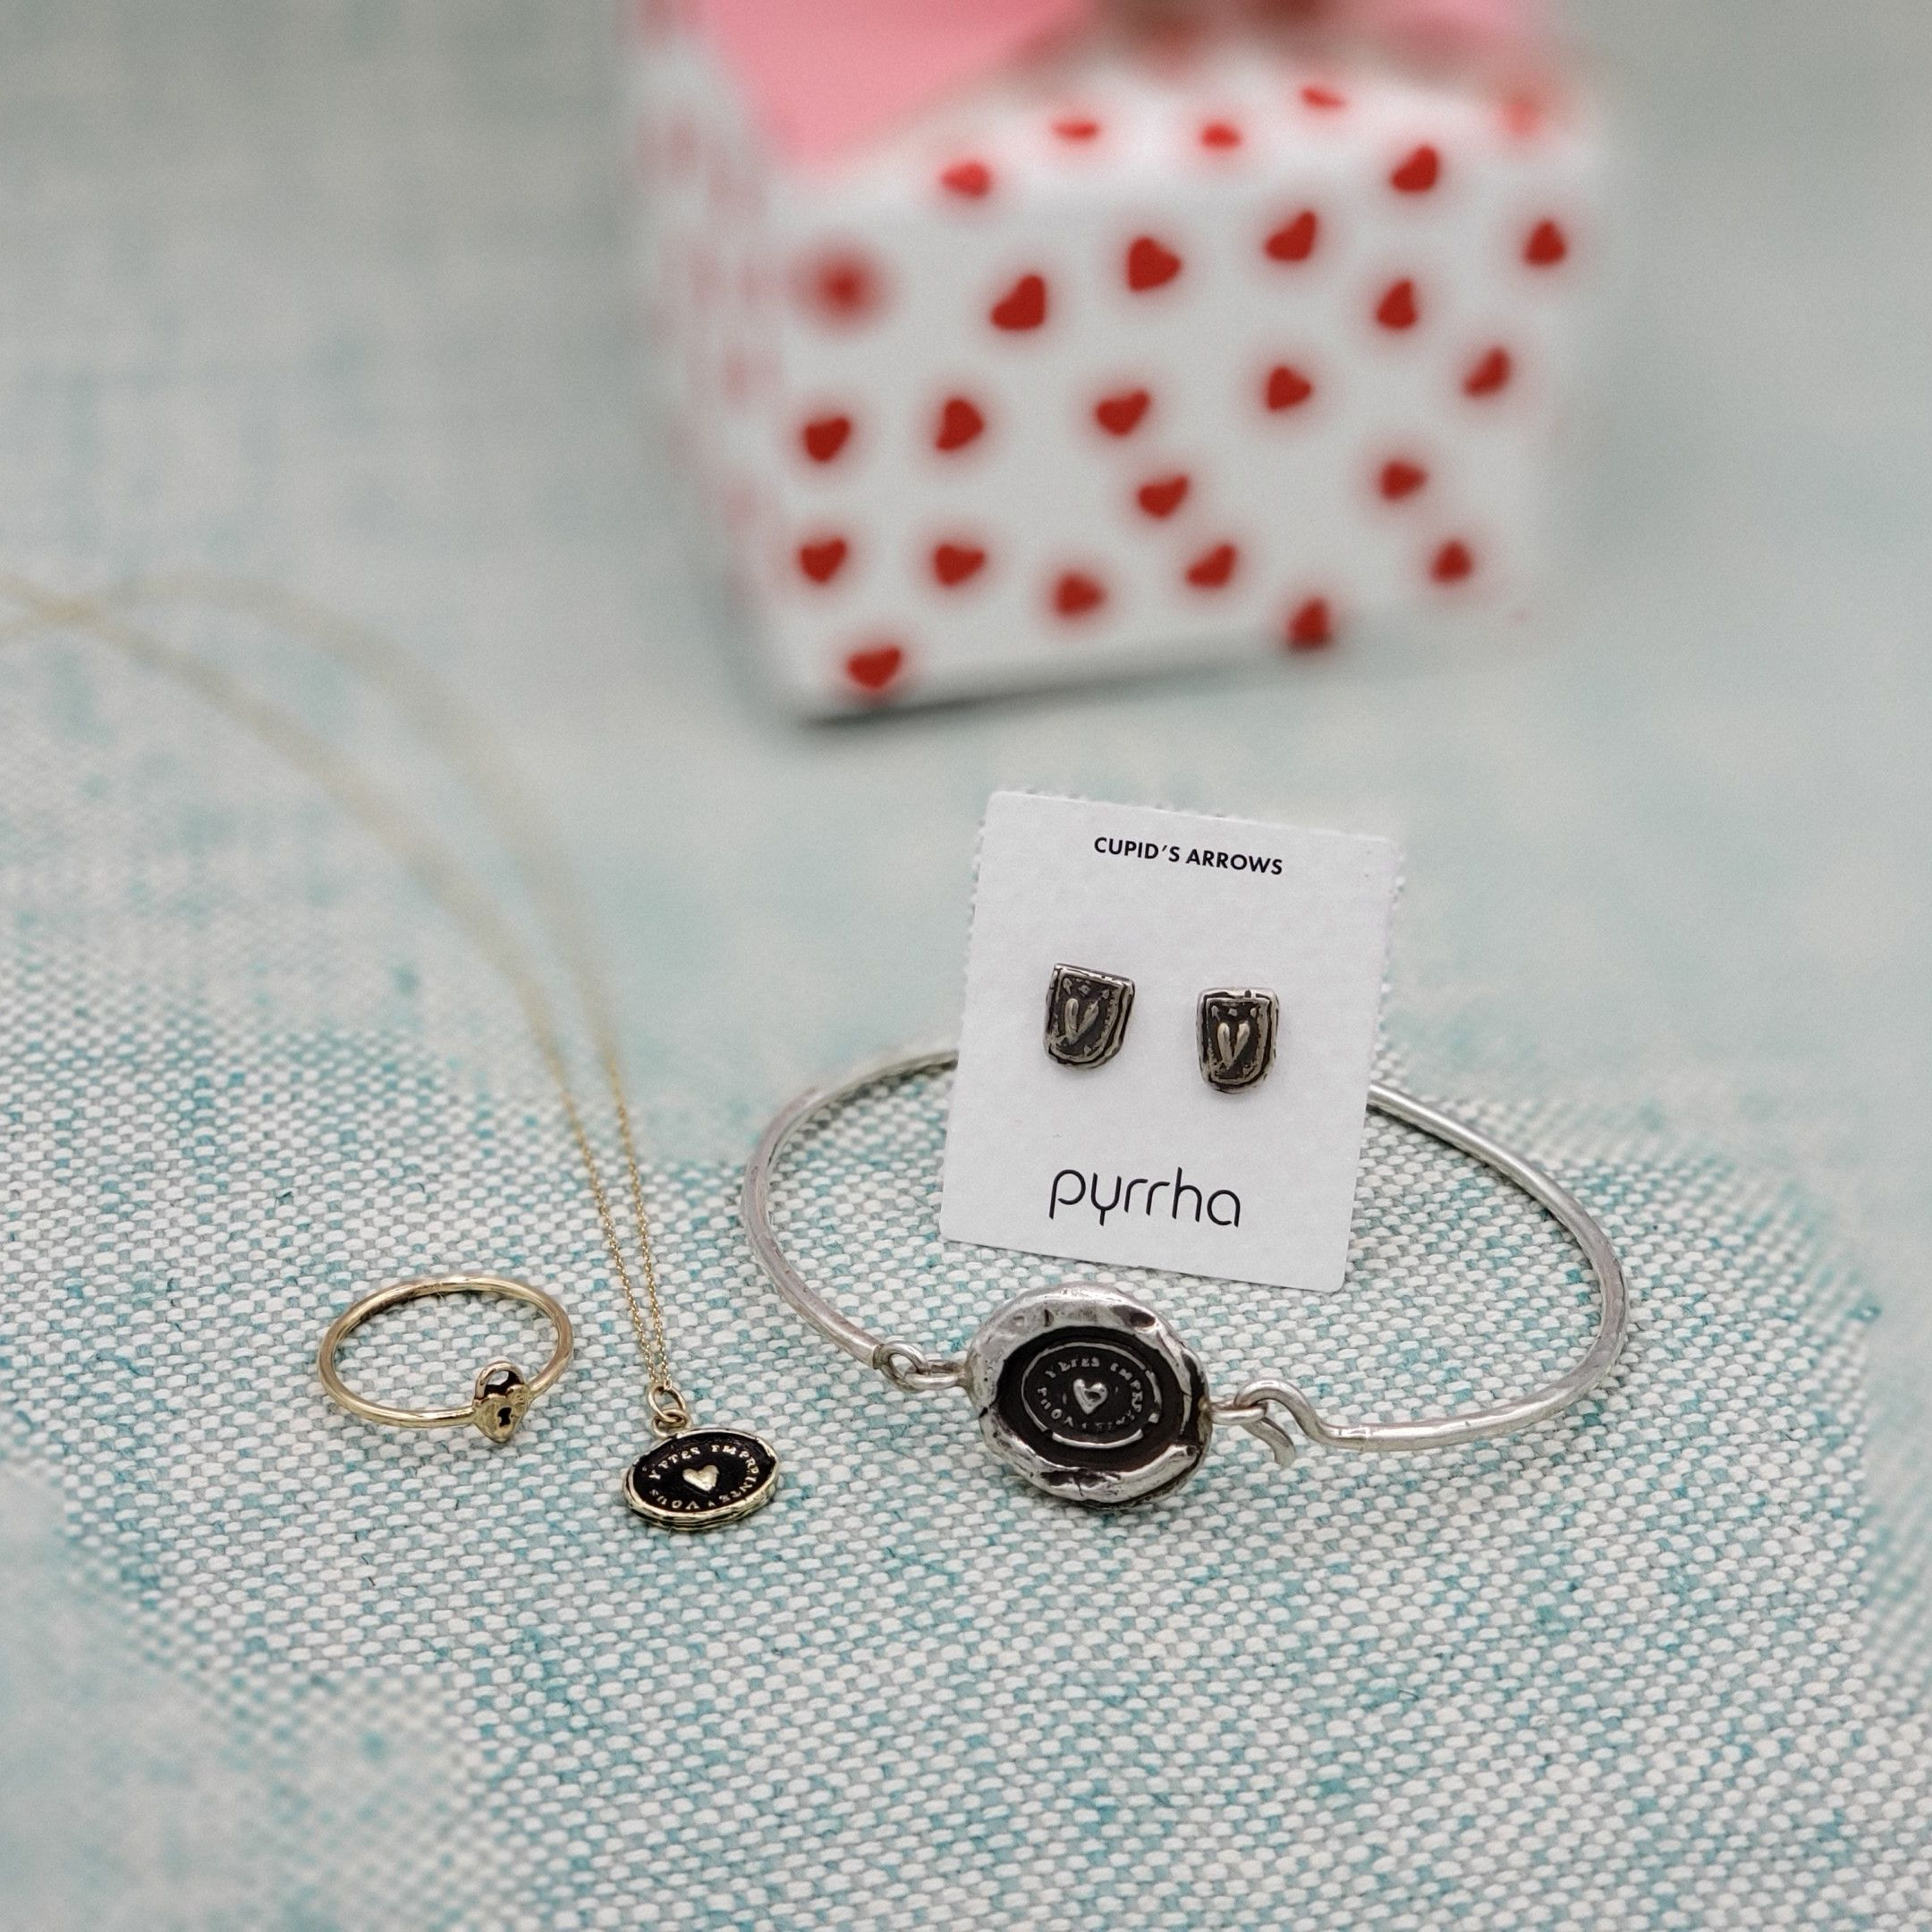 97a36052c Love is in the air at Dana's with Pyrrha. Choose the meaning that best  symbolizes your LOVE. #ValentinesDay #meaningful #gift #love #necklace  #symbol ...